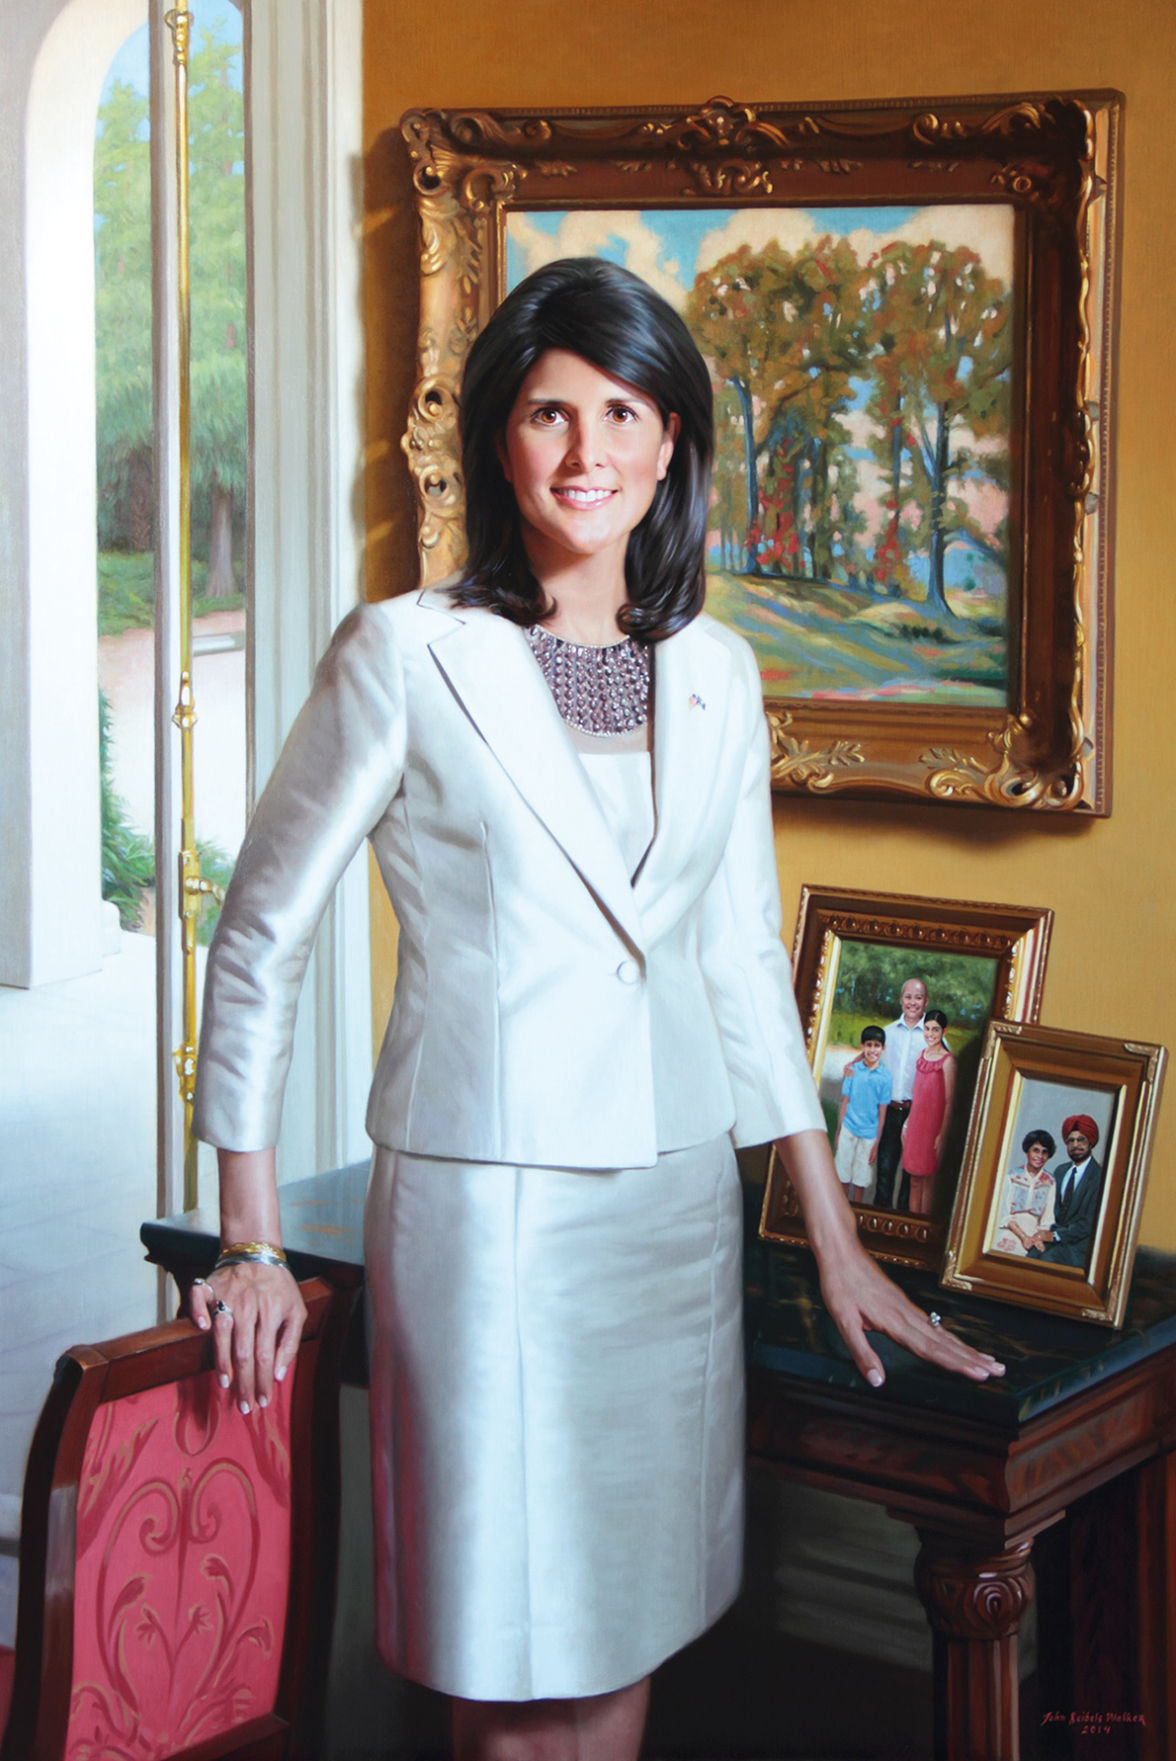 Official portrait of Gov. Nikki Haley unveiled during inauguration week | News | thetandd.com